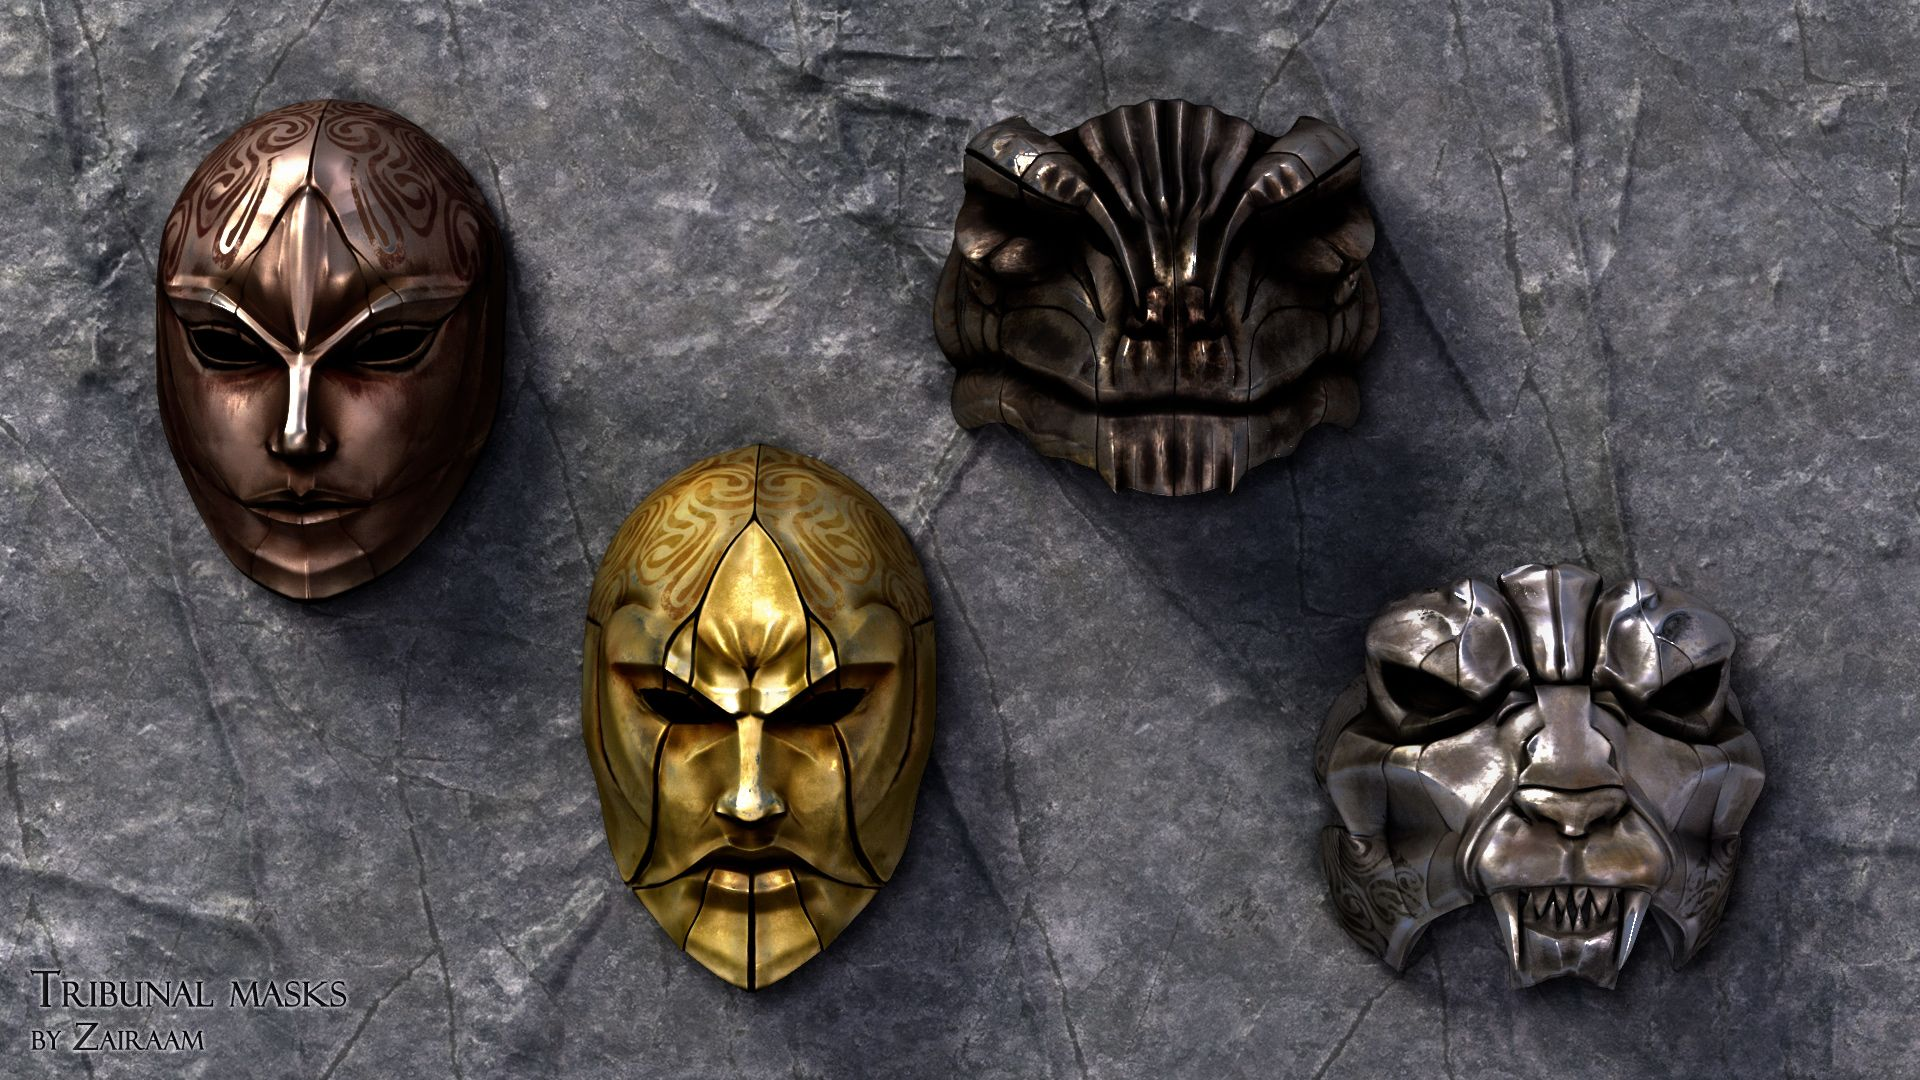 Skyrim Masks Google Search Rpg Images Pinterest